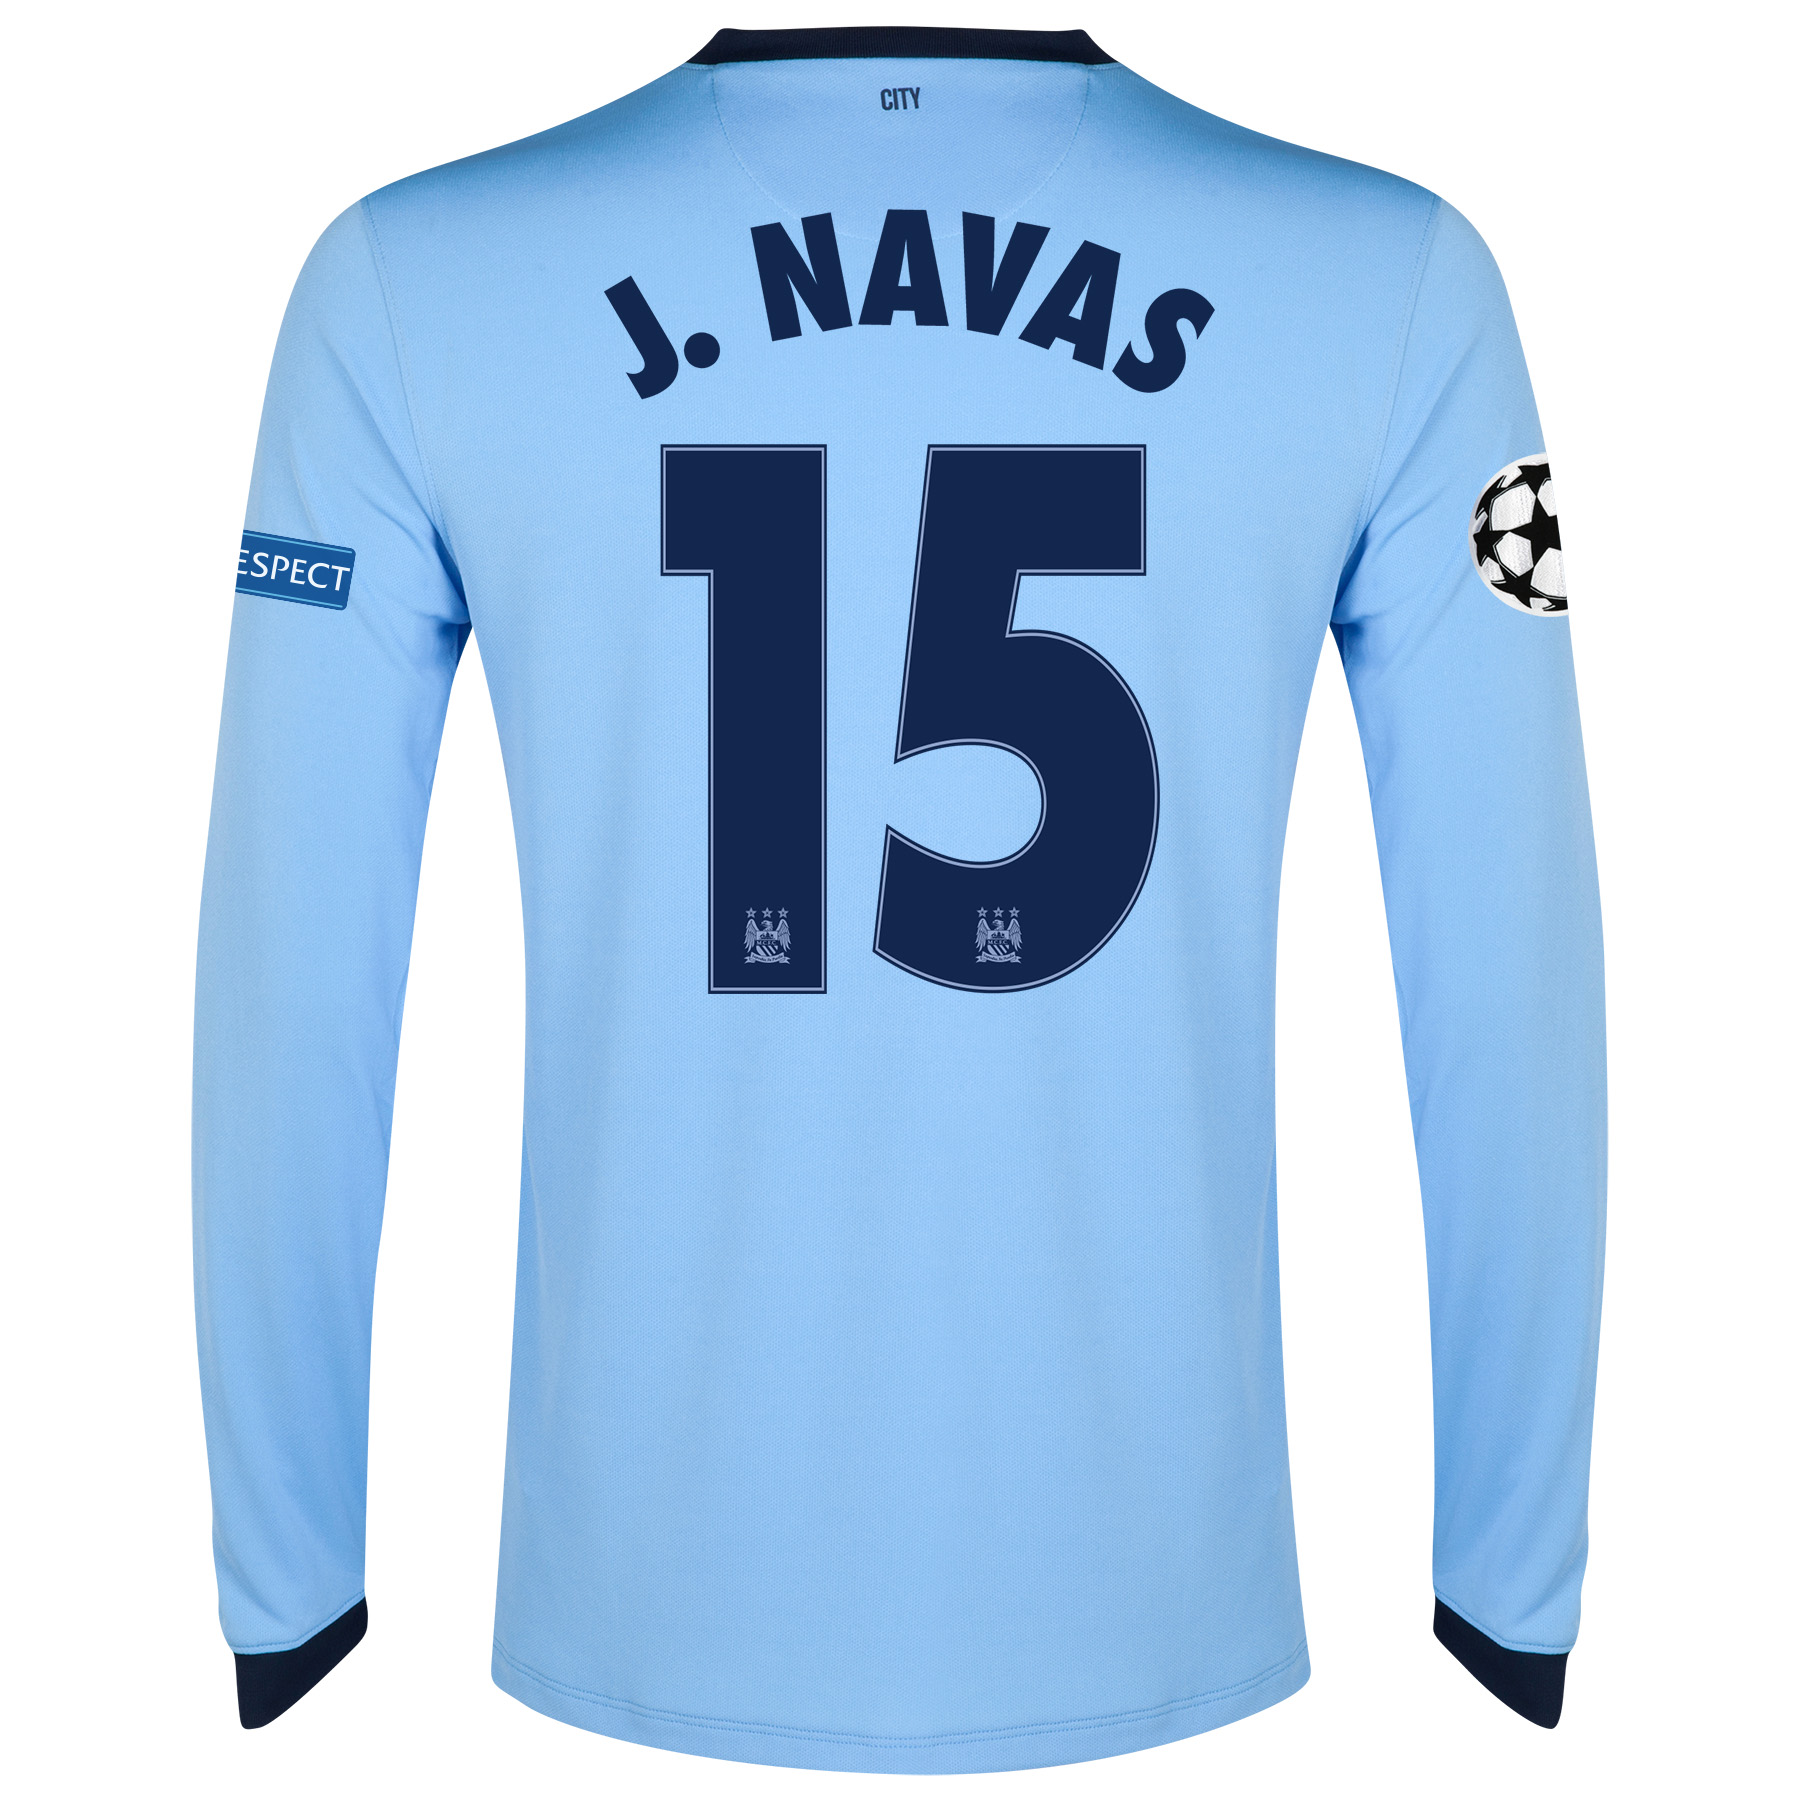 Manchester City UEFA Champions League Home Shirt 2014/15 - Long Sleeve - Kids Sky Blue with J.Navas 15 printing